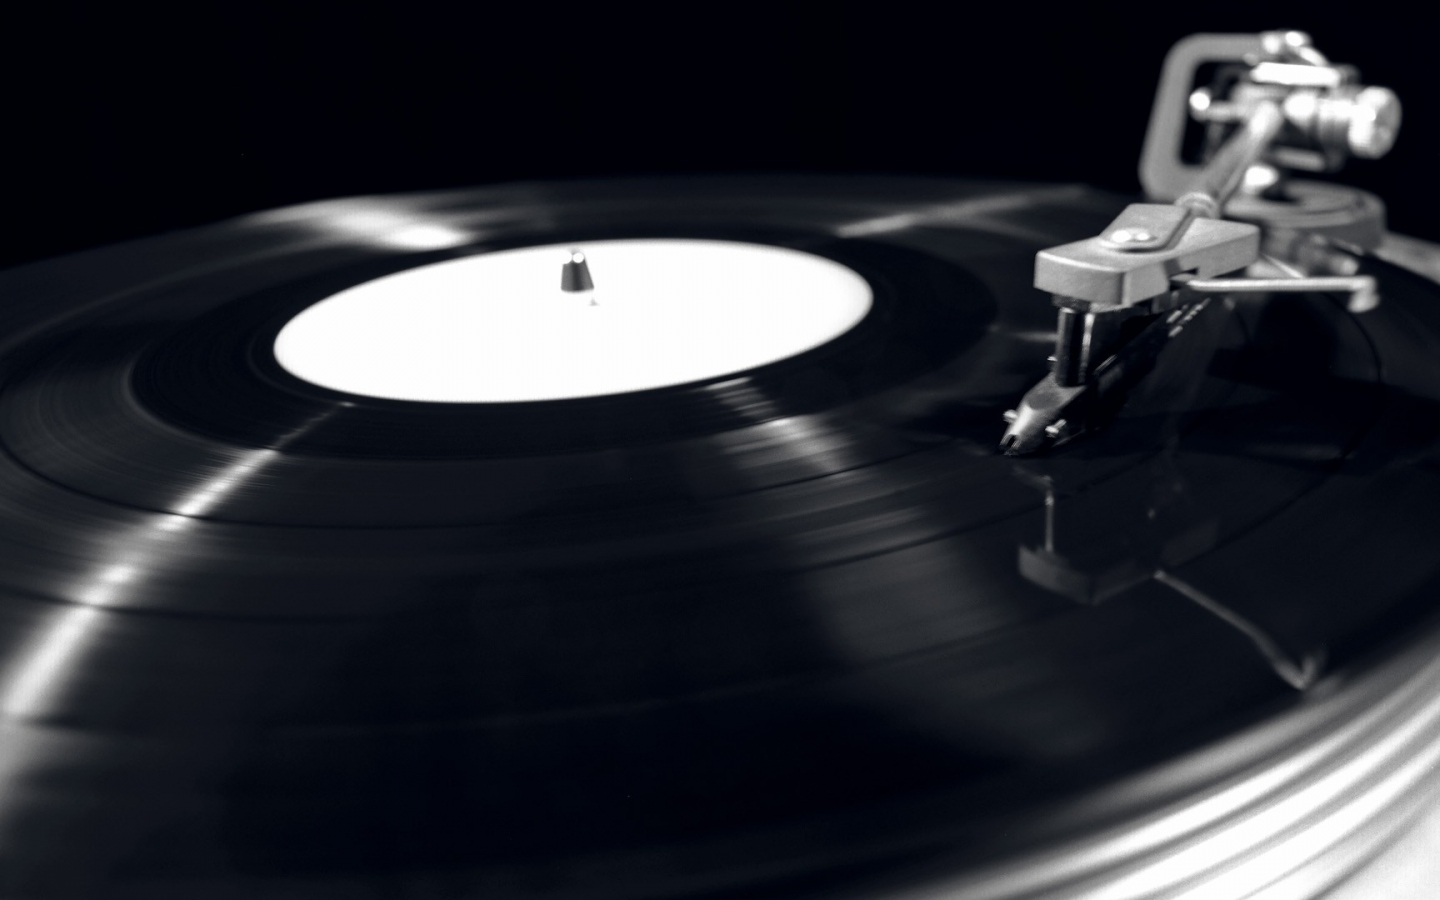 world vinyl record player monochrome gramophone 1920x1080 wallpaper 1440x900